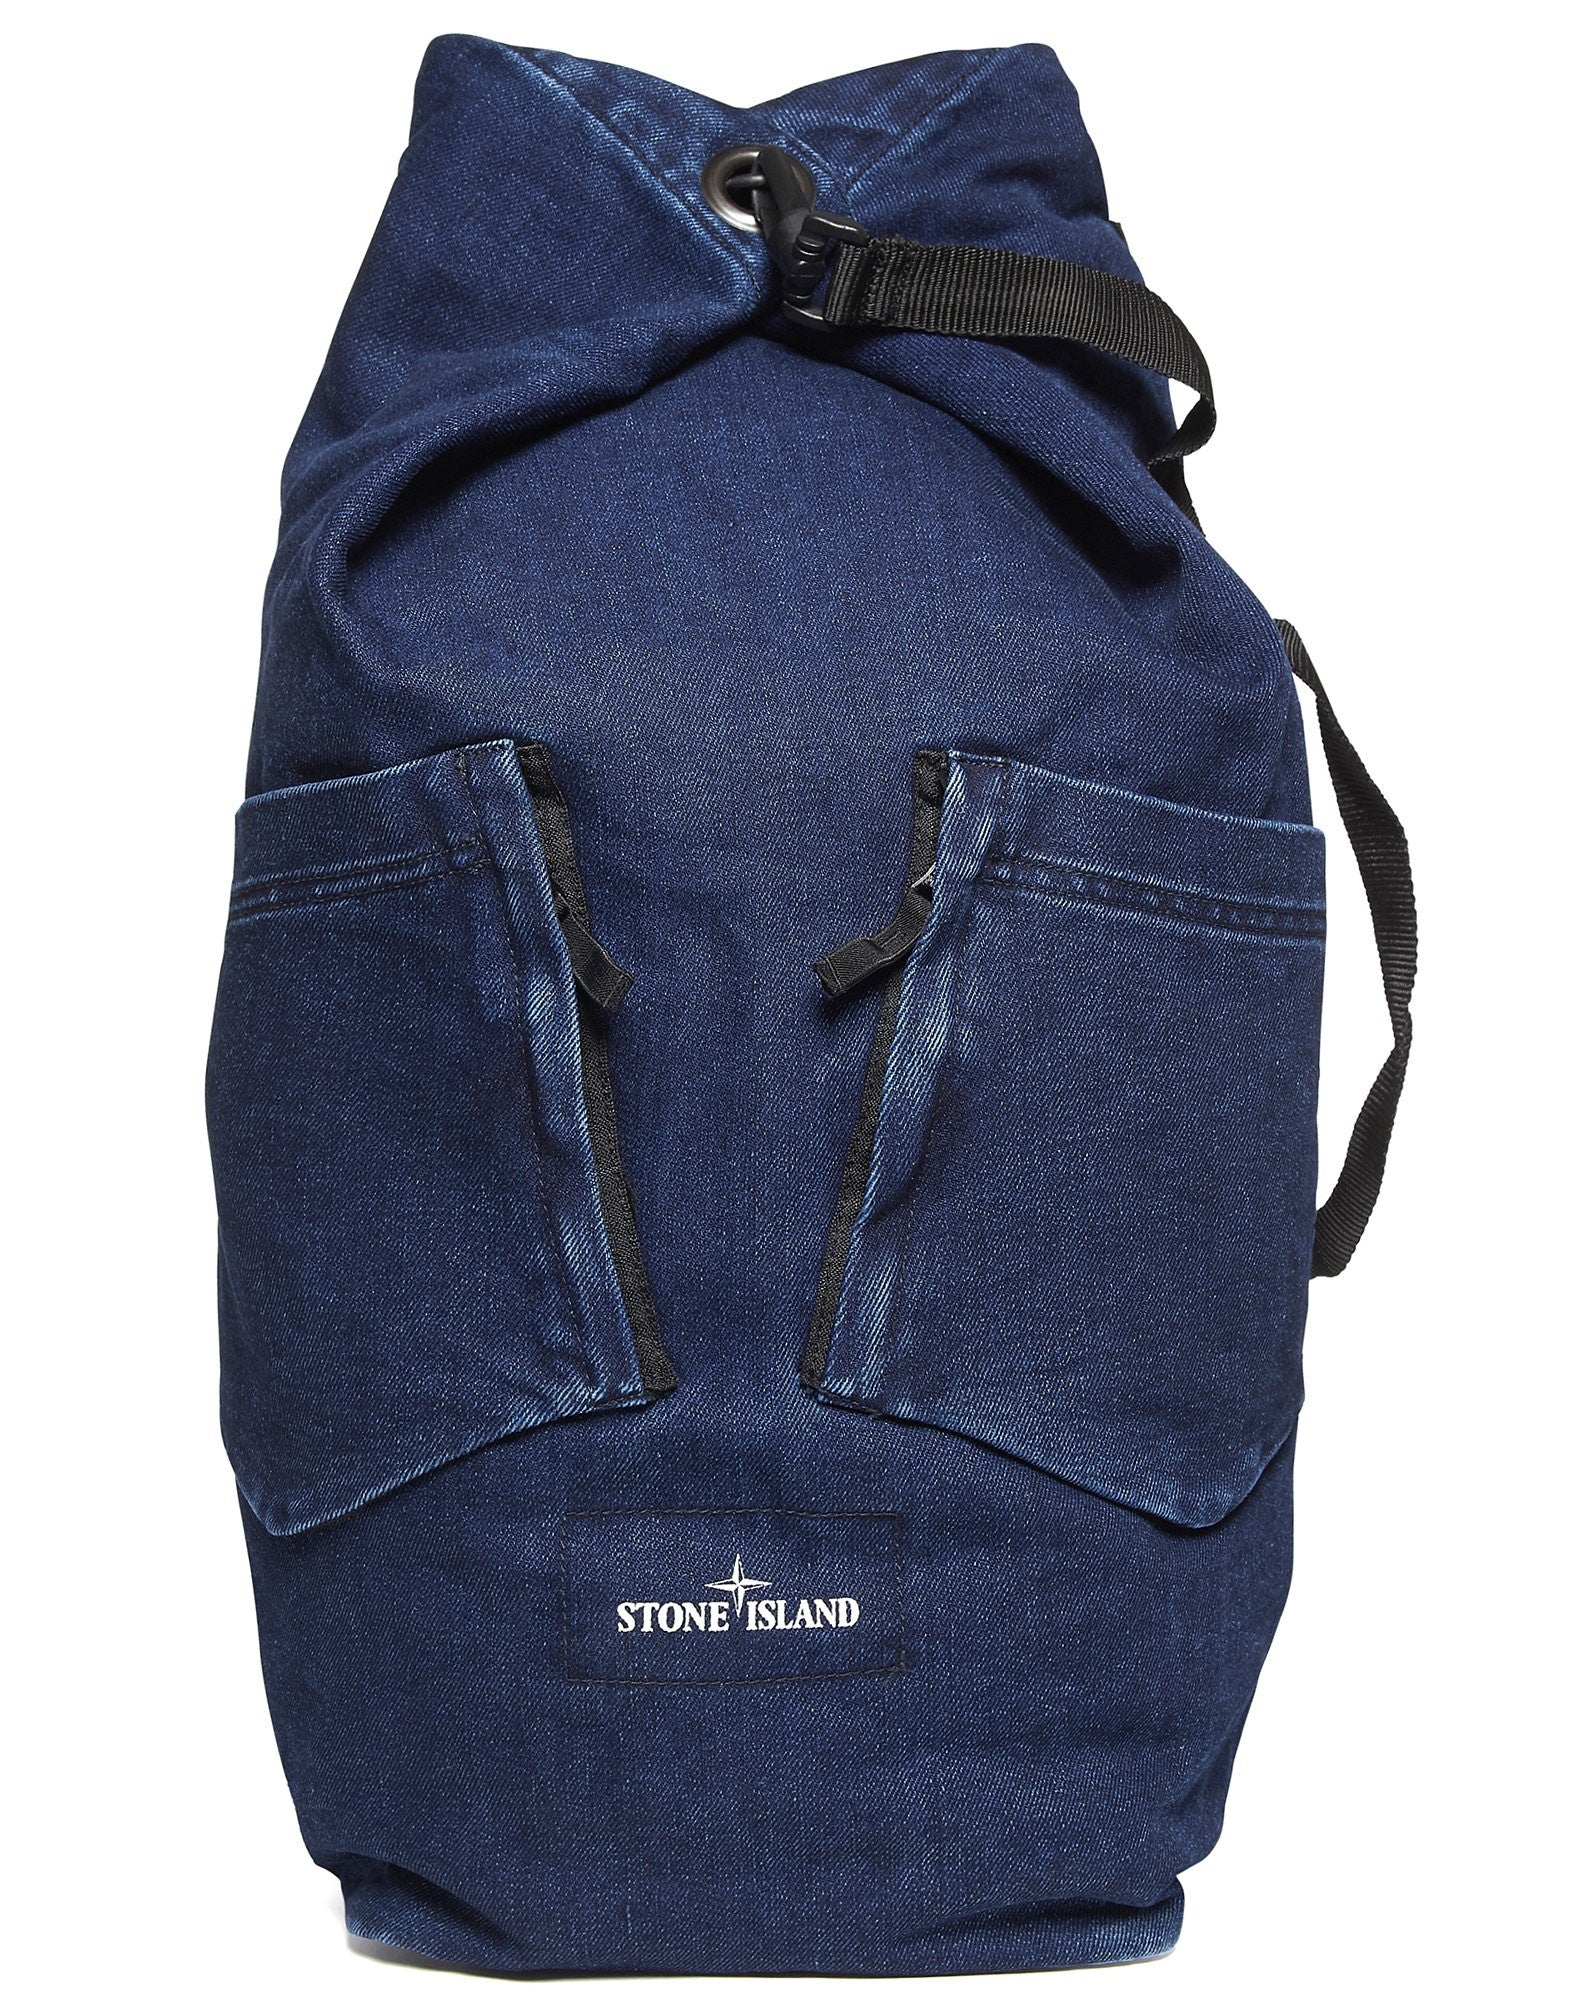 91934 POLYPROPYLENE DENIM Bag in Blue